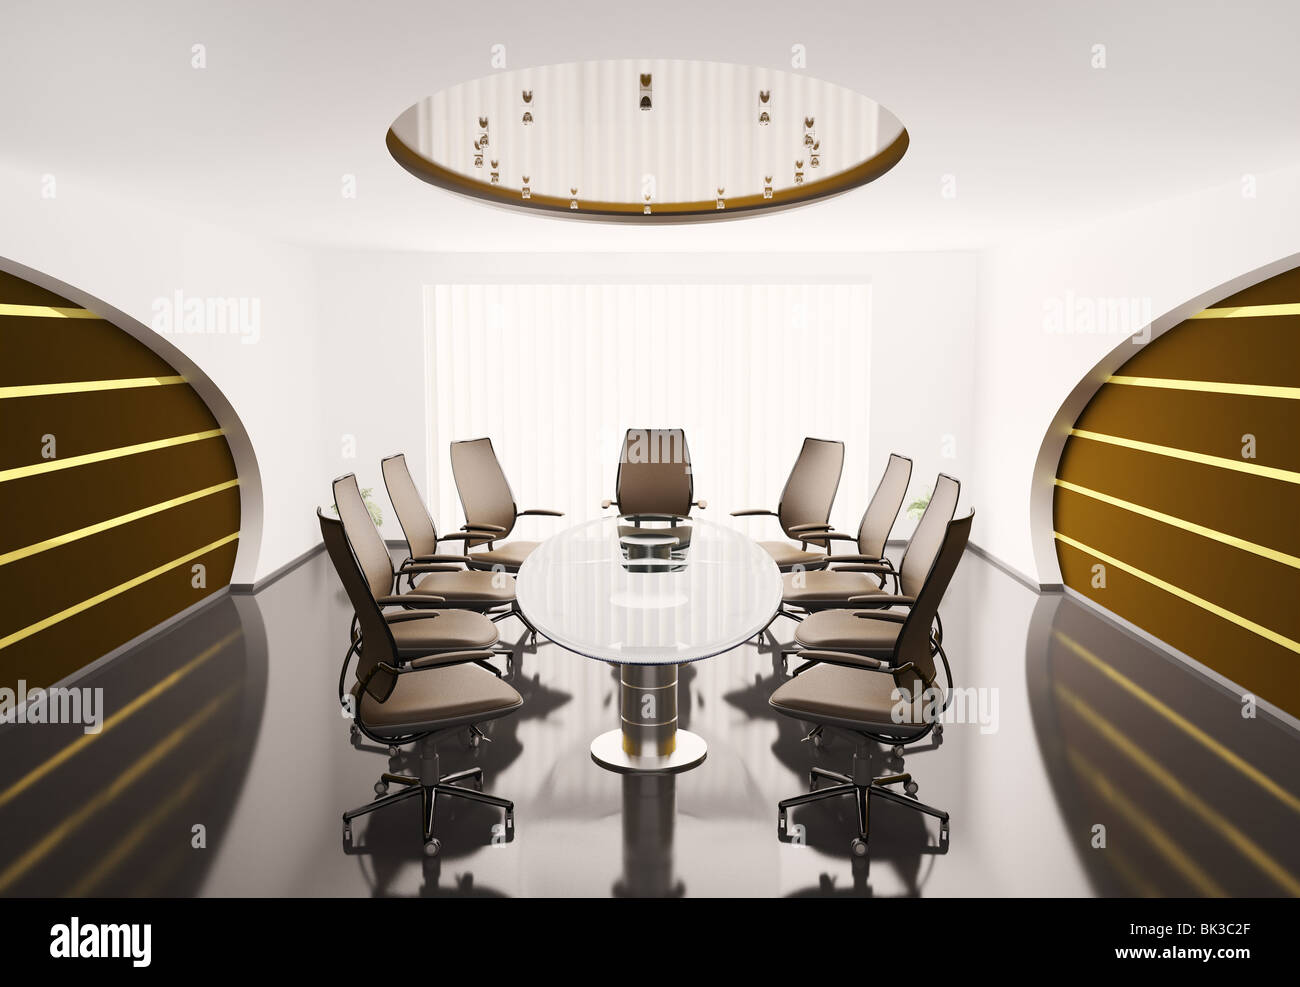 Oval Conference Table Stock Photos Oval Conference Table Stock - Oval glass conference table